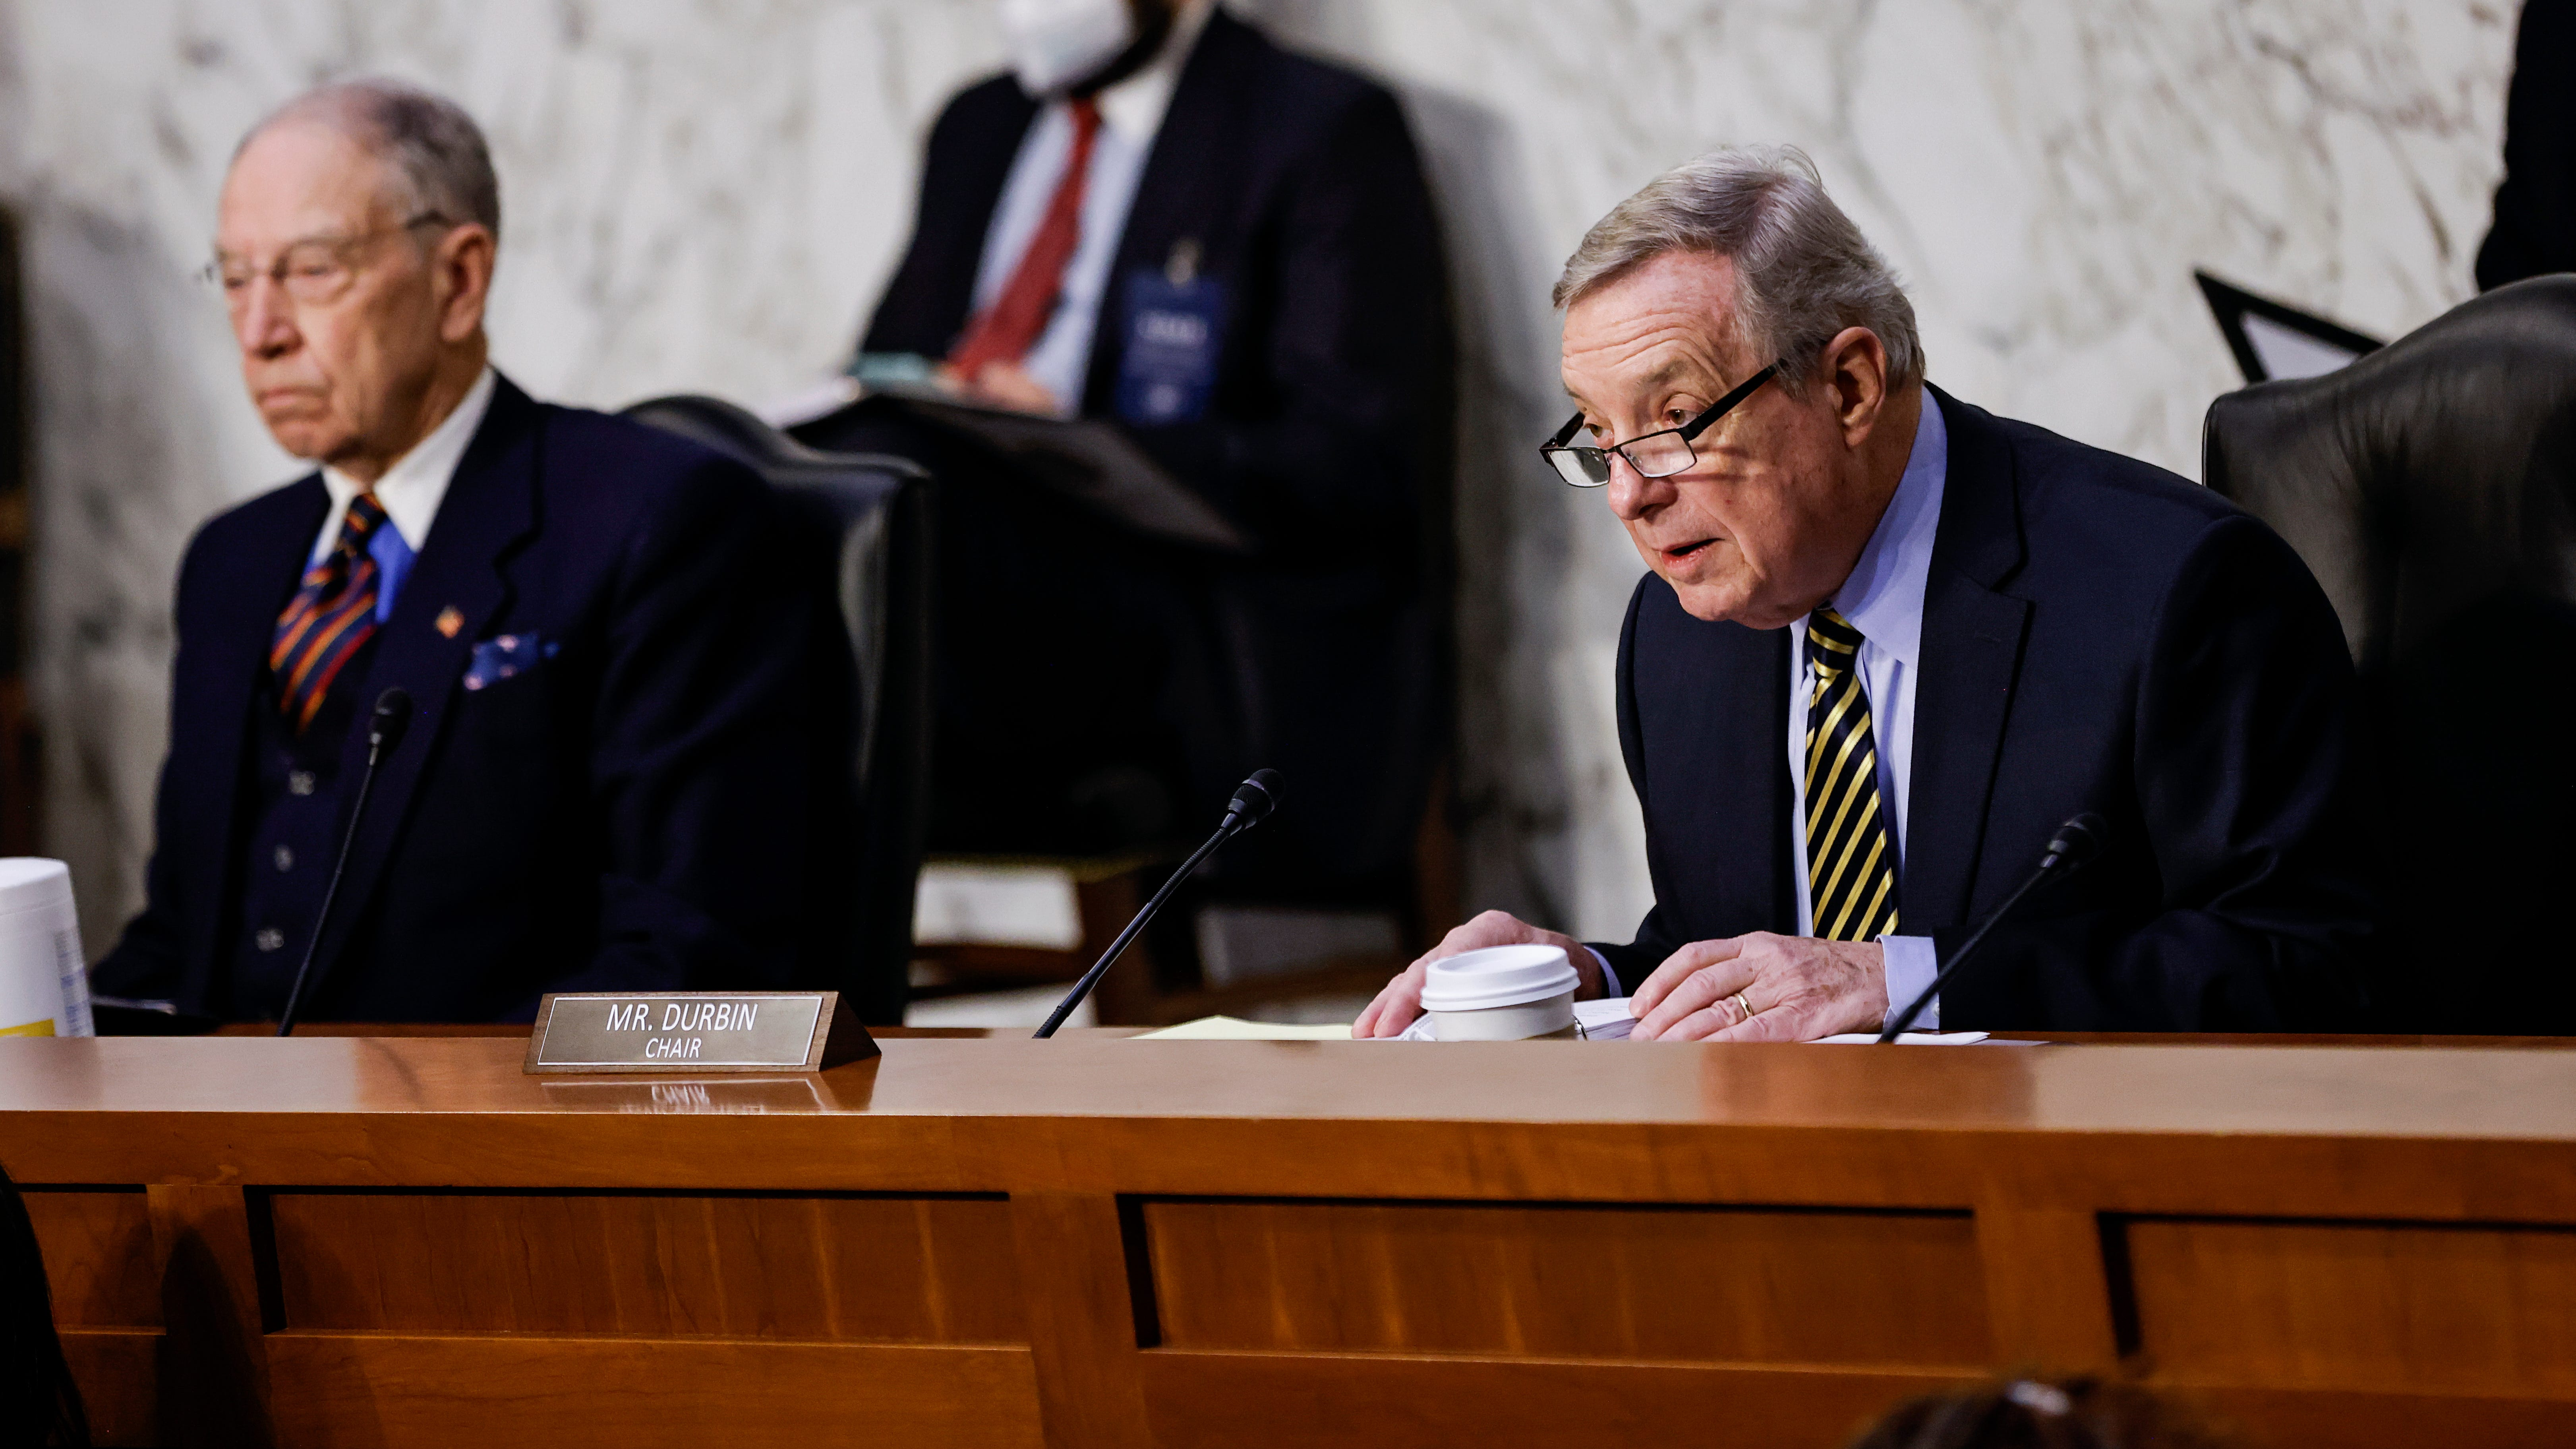 """Senate Judiciary Committee Chairman Dick Durbin, D-Ill., right, said the country came close to a """"constitutional crisis."""" Sen. Chuck Grassley, R-Iowa, disagreed with """"the left's claims that the former president weaponized the Justice Department to alter the election results."""""""